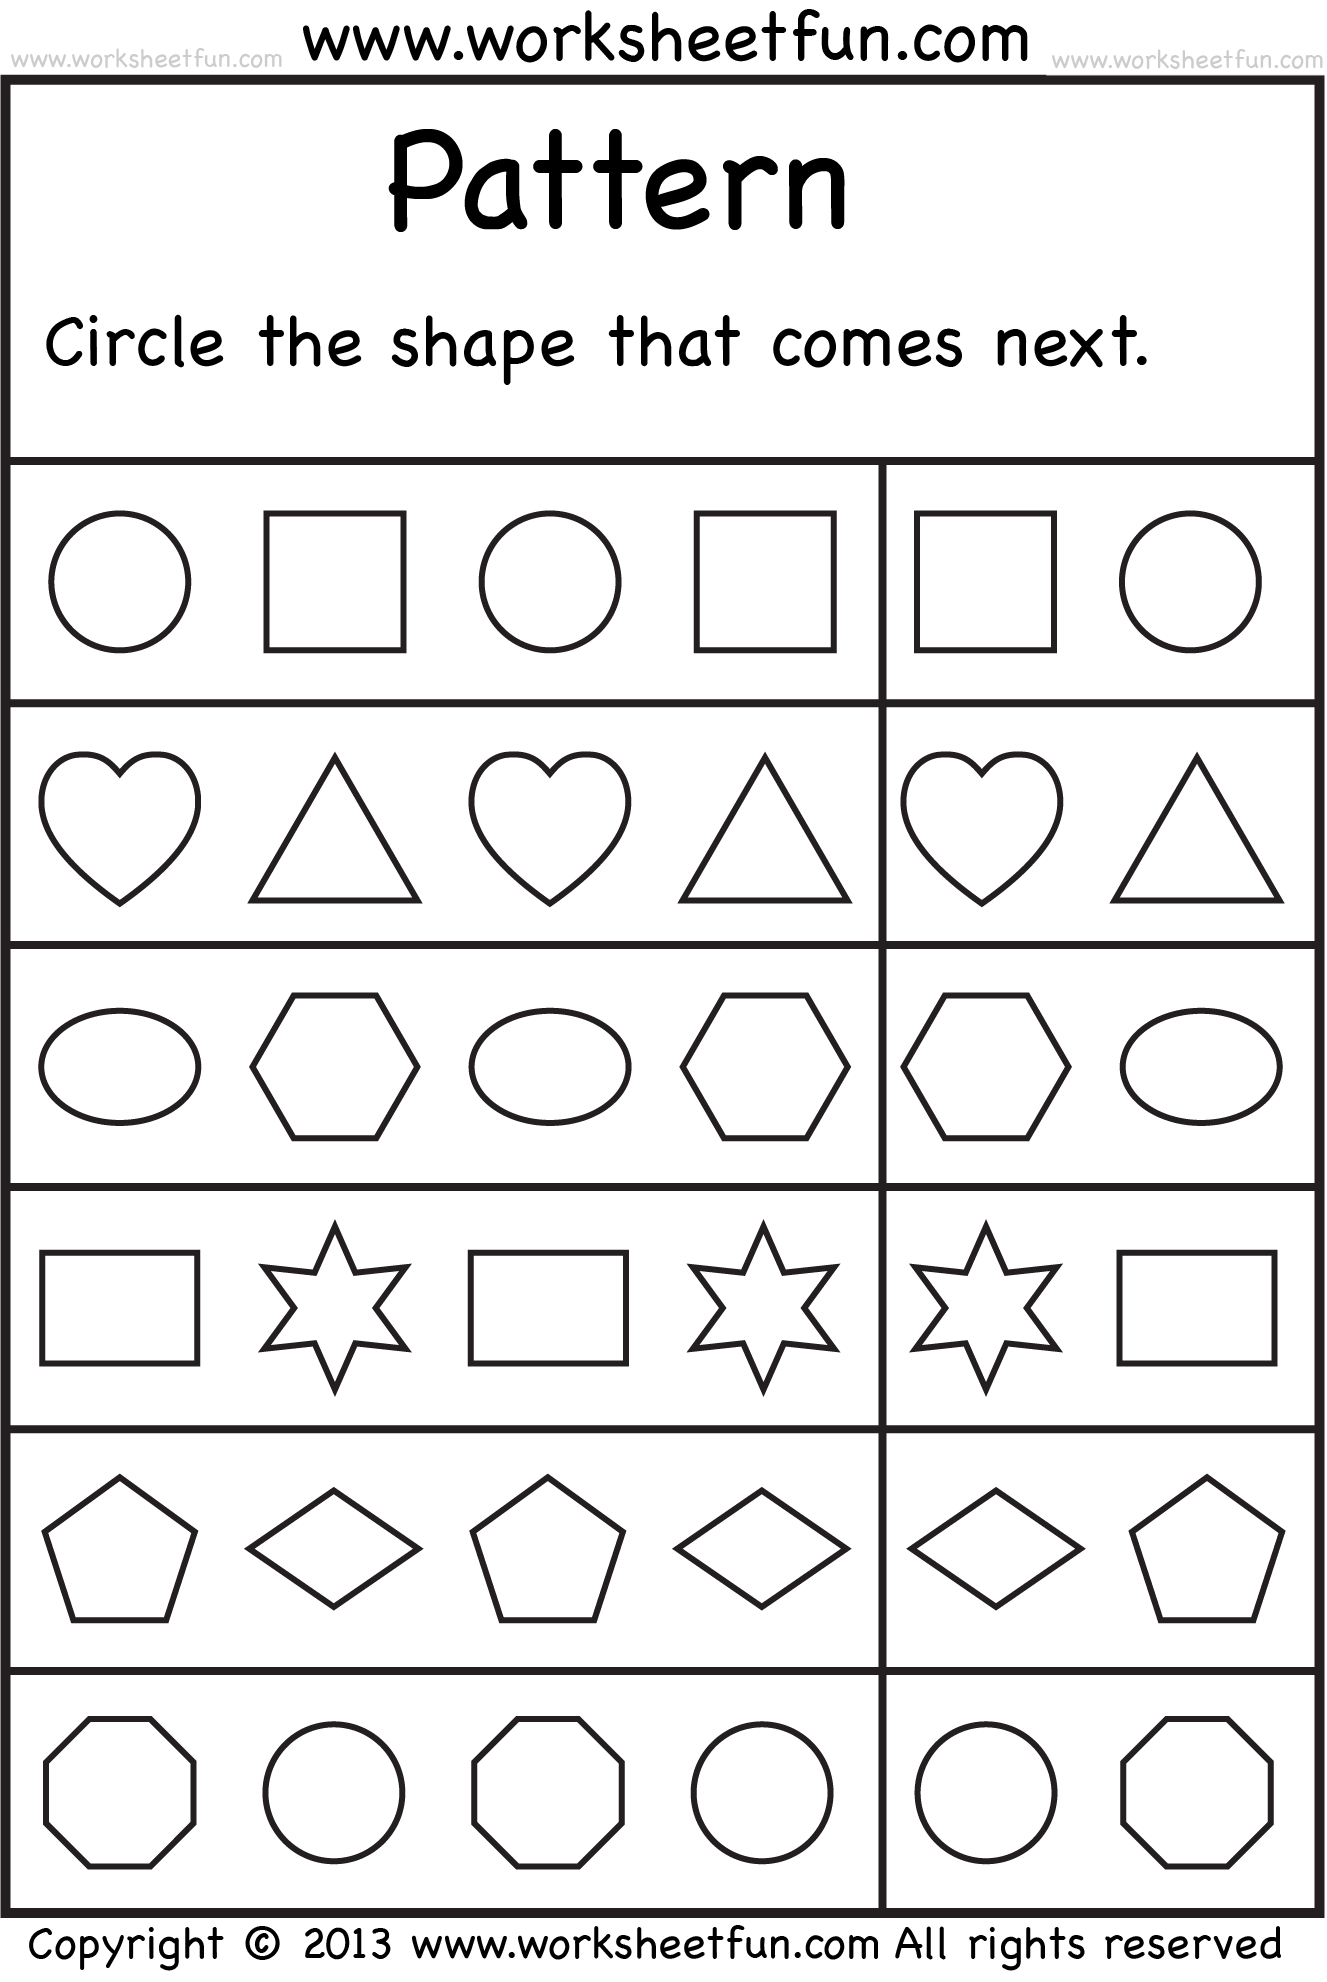 Weirdmailus  Mesmerizing  Images About School Worksheets On Pinterest  Number Words  With Entrancing  Images About School Worksheets On Pinterest  Number Words Alphabet Worksheets And Free Printable Kindergarten Worksheets With Extraordinary Reconstruction Worksheets Also Compare And Contrast Worksheets Rd Grade In Addition  Times Table Worksheet And Spelling Worksheet Maker As Well As Free Th Grade Math Worksheets Additionally Correlation Worksheet From Pinterestcom With Weirdmailus  Entrancing  Images About School Worksheets On Pinterest  Number Words  With Extraordinary  Images About School Worksheets On Pinterest  Number Words Alphabet Worksheets And Free Printable Kindergarten Worksheets And Mesmerizing Reconstruction Worksheets Also Compare And Contrast Worksheets Rd Grade In Addition  Times Table Worksheet From Pinterestcom